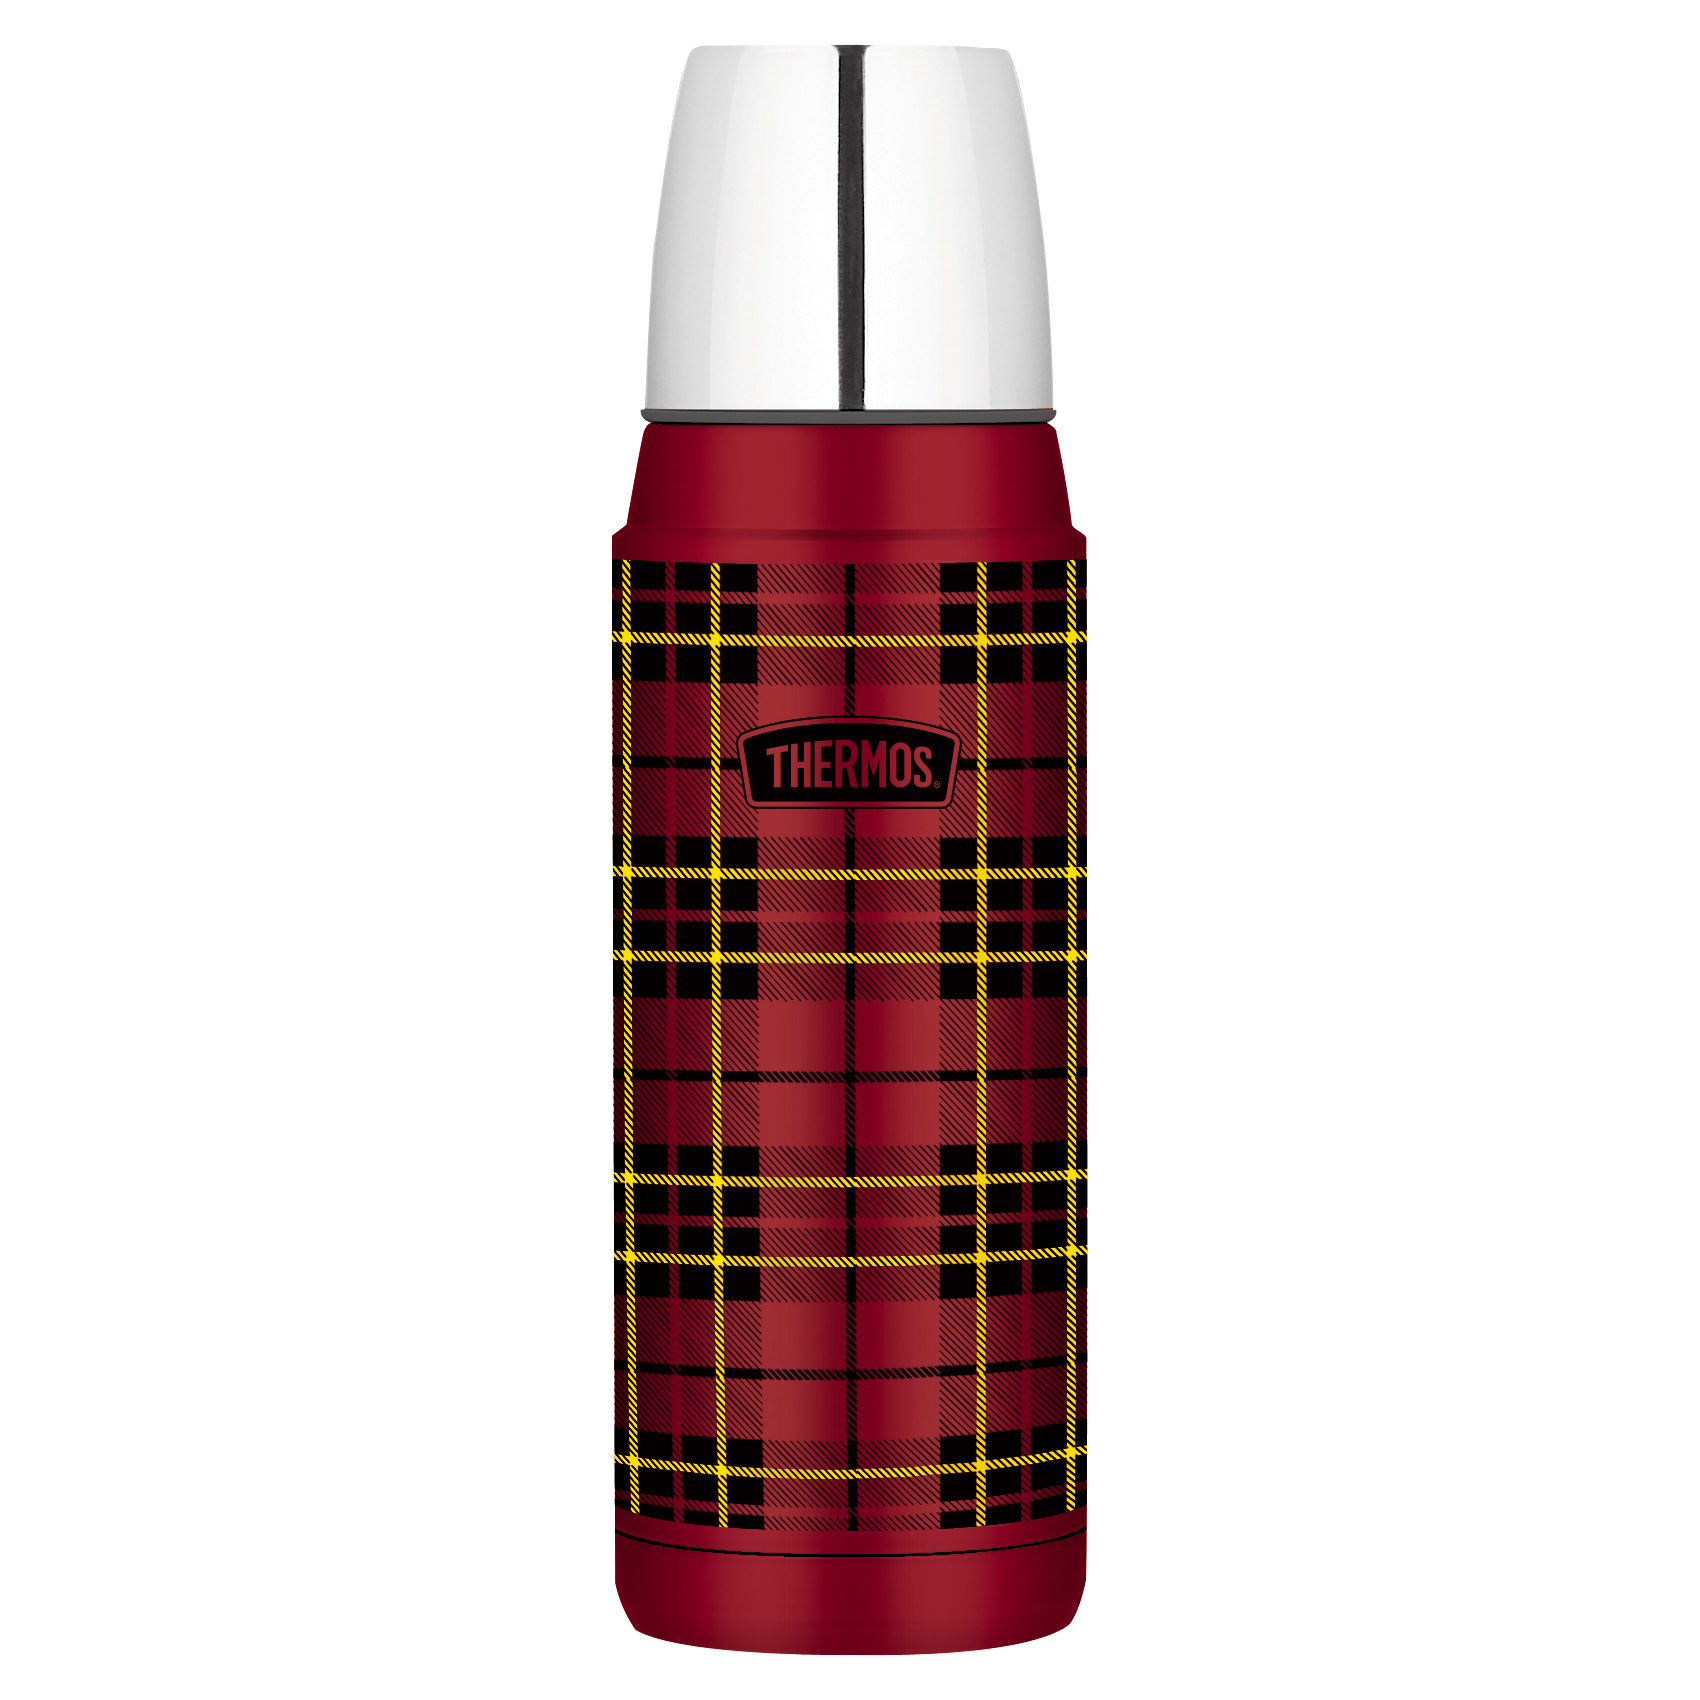 Thermos Heritage Red Plaid Stainless Steel 16 Ounce Vacuum Insulated Compact Bottle